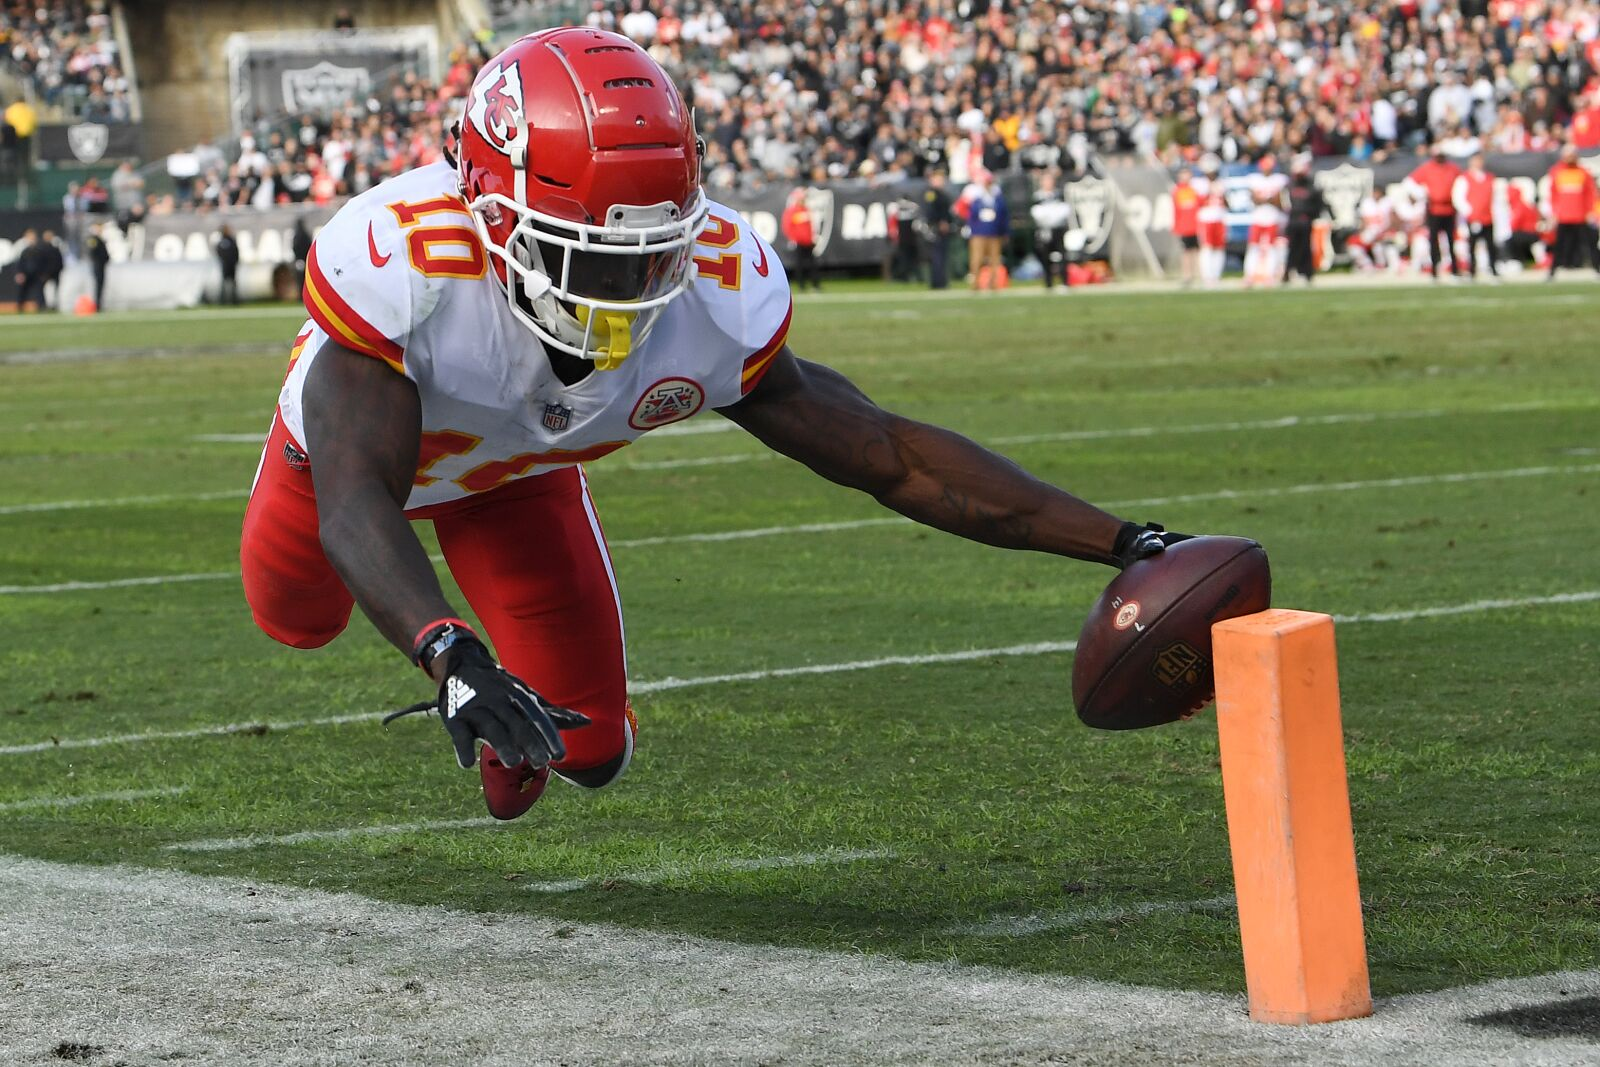 Tyreek Hill is questionable to return with ankle injury vs. Ravens